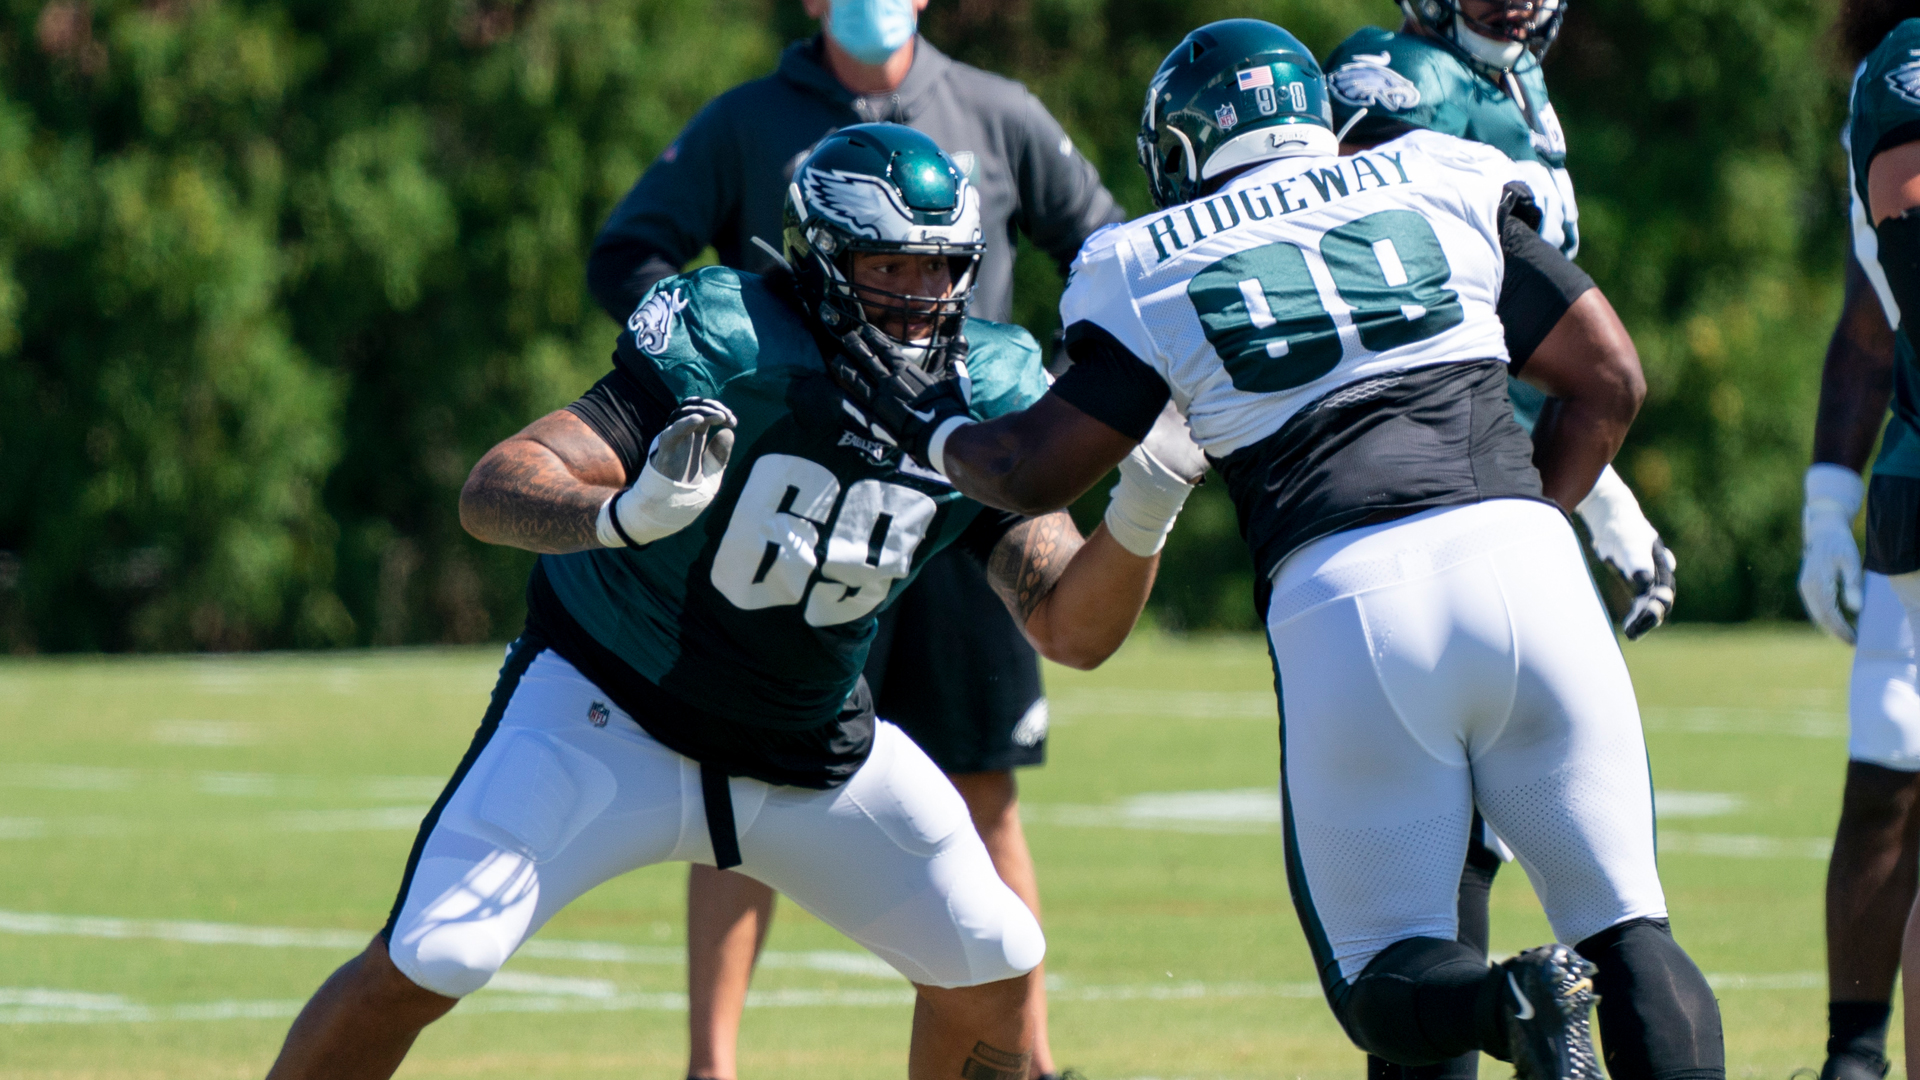 Injury bug will keep Eagles defensive lineman Hassan Ridgeway out for year